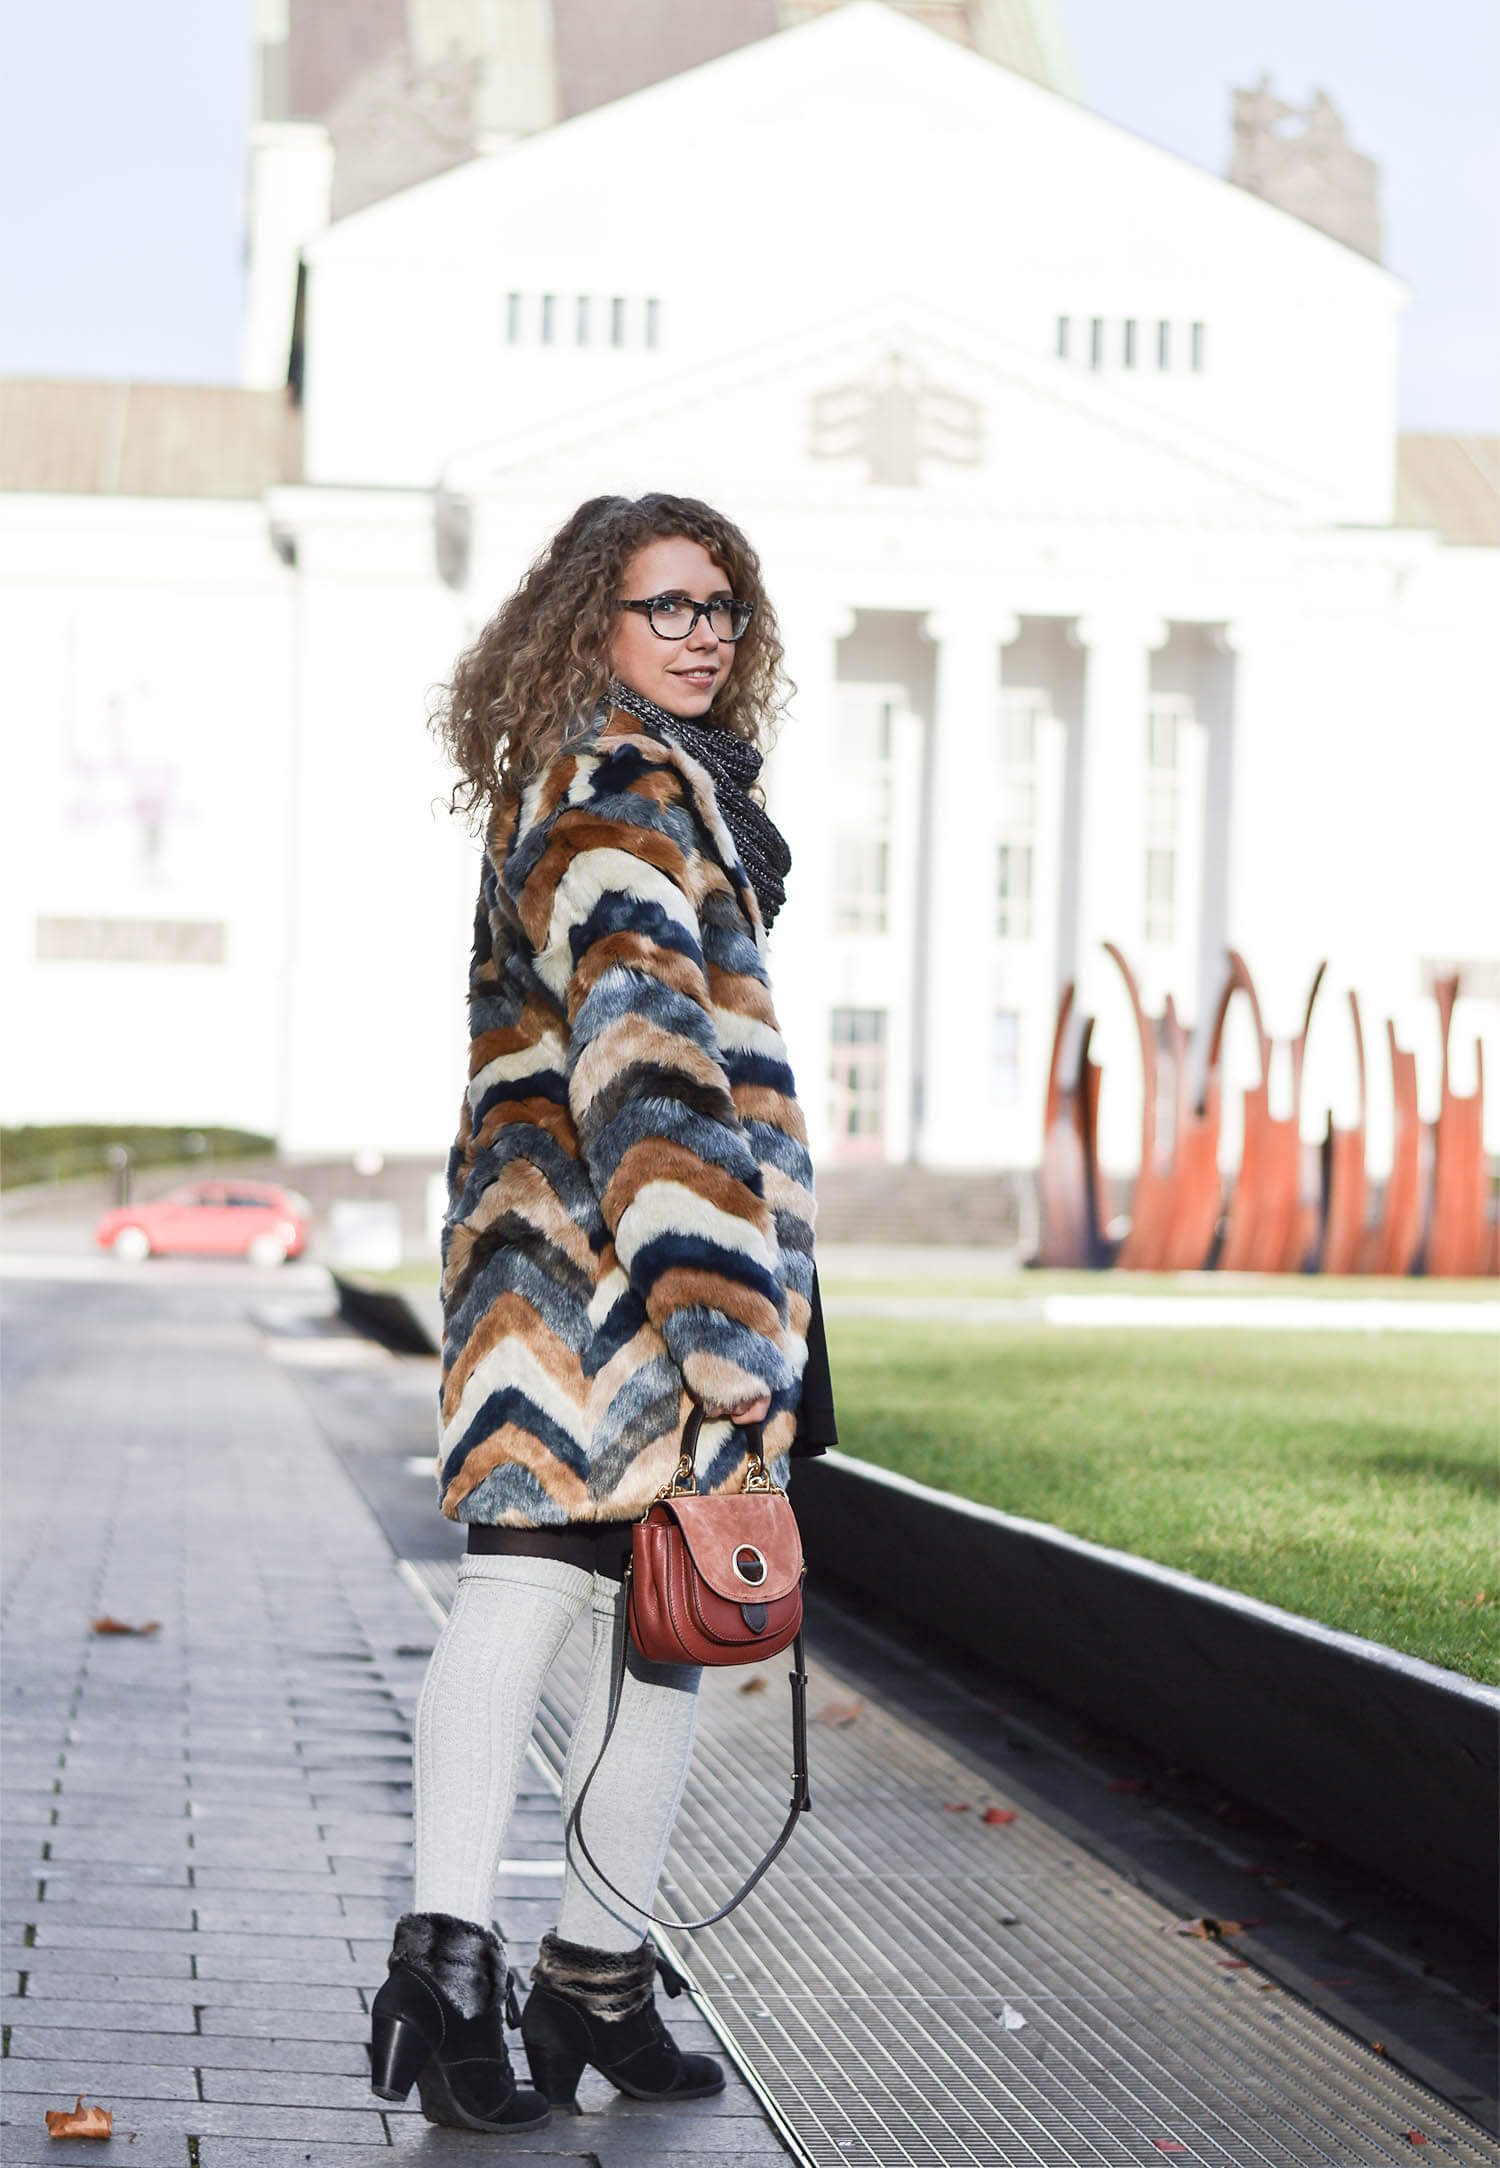 Kationette-fashionblog-Outfit-Cozy-Winter-streetstyle-Fake-Fur-Overknee-Socks-michaelkors-saddlebag-curls